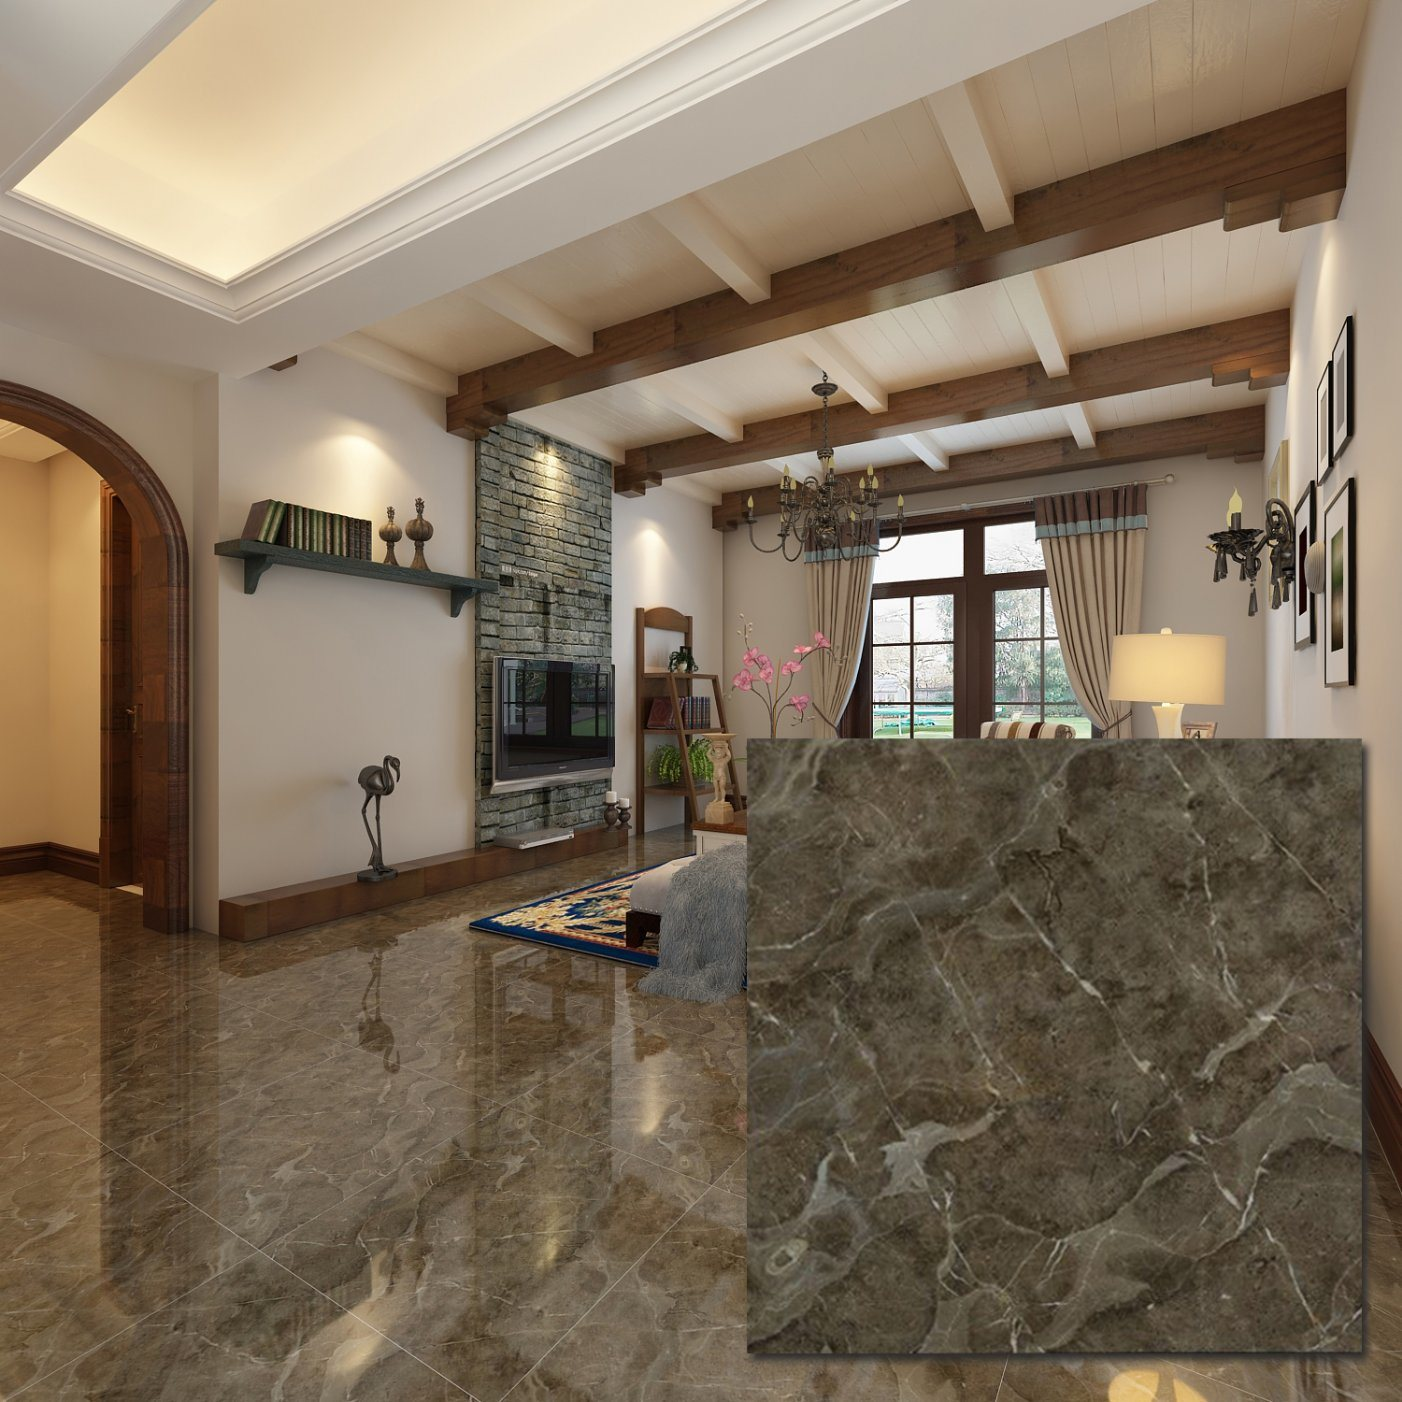 China 24x24 Inch Mexican Italian Marble Vitrified Flooring Tile China Floor Tile Ceramic Porcelain Tile